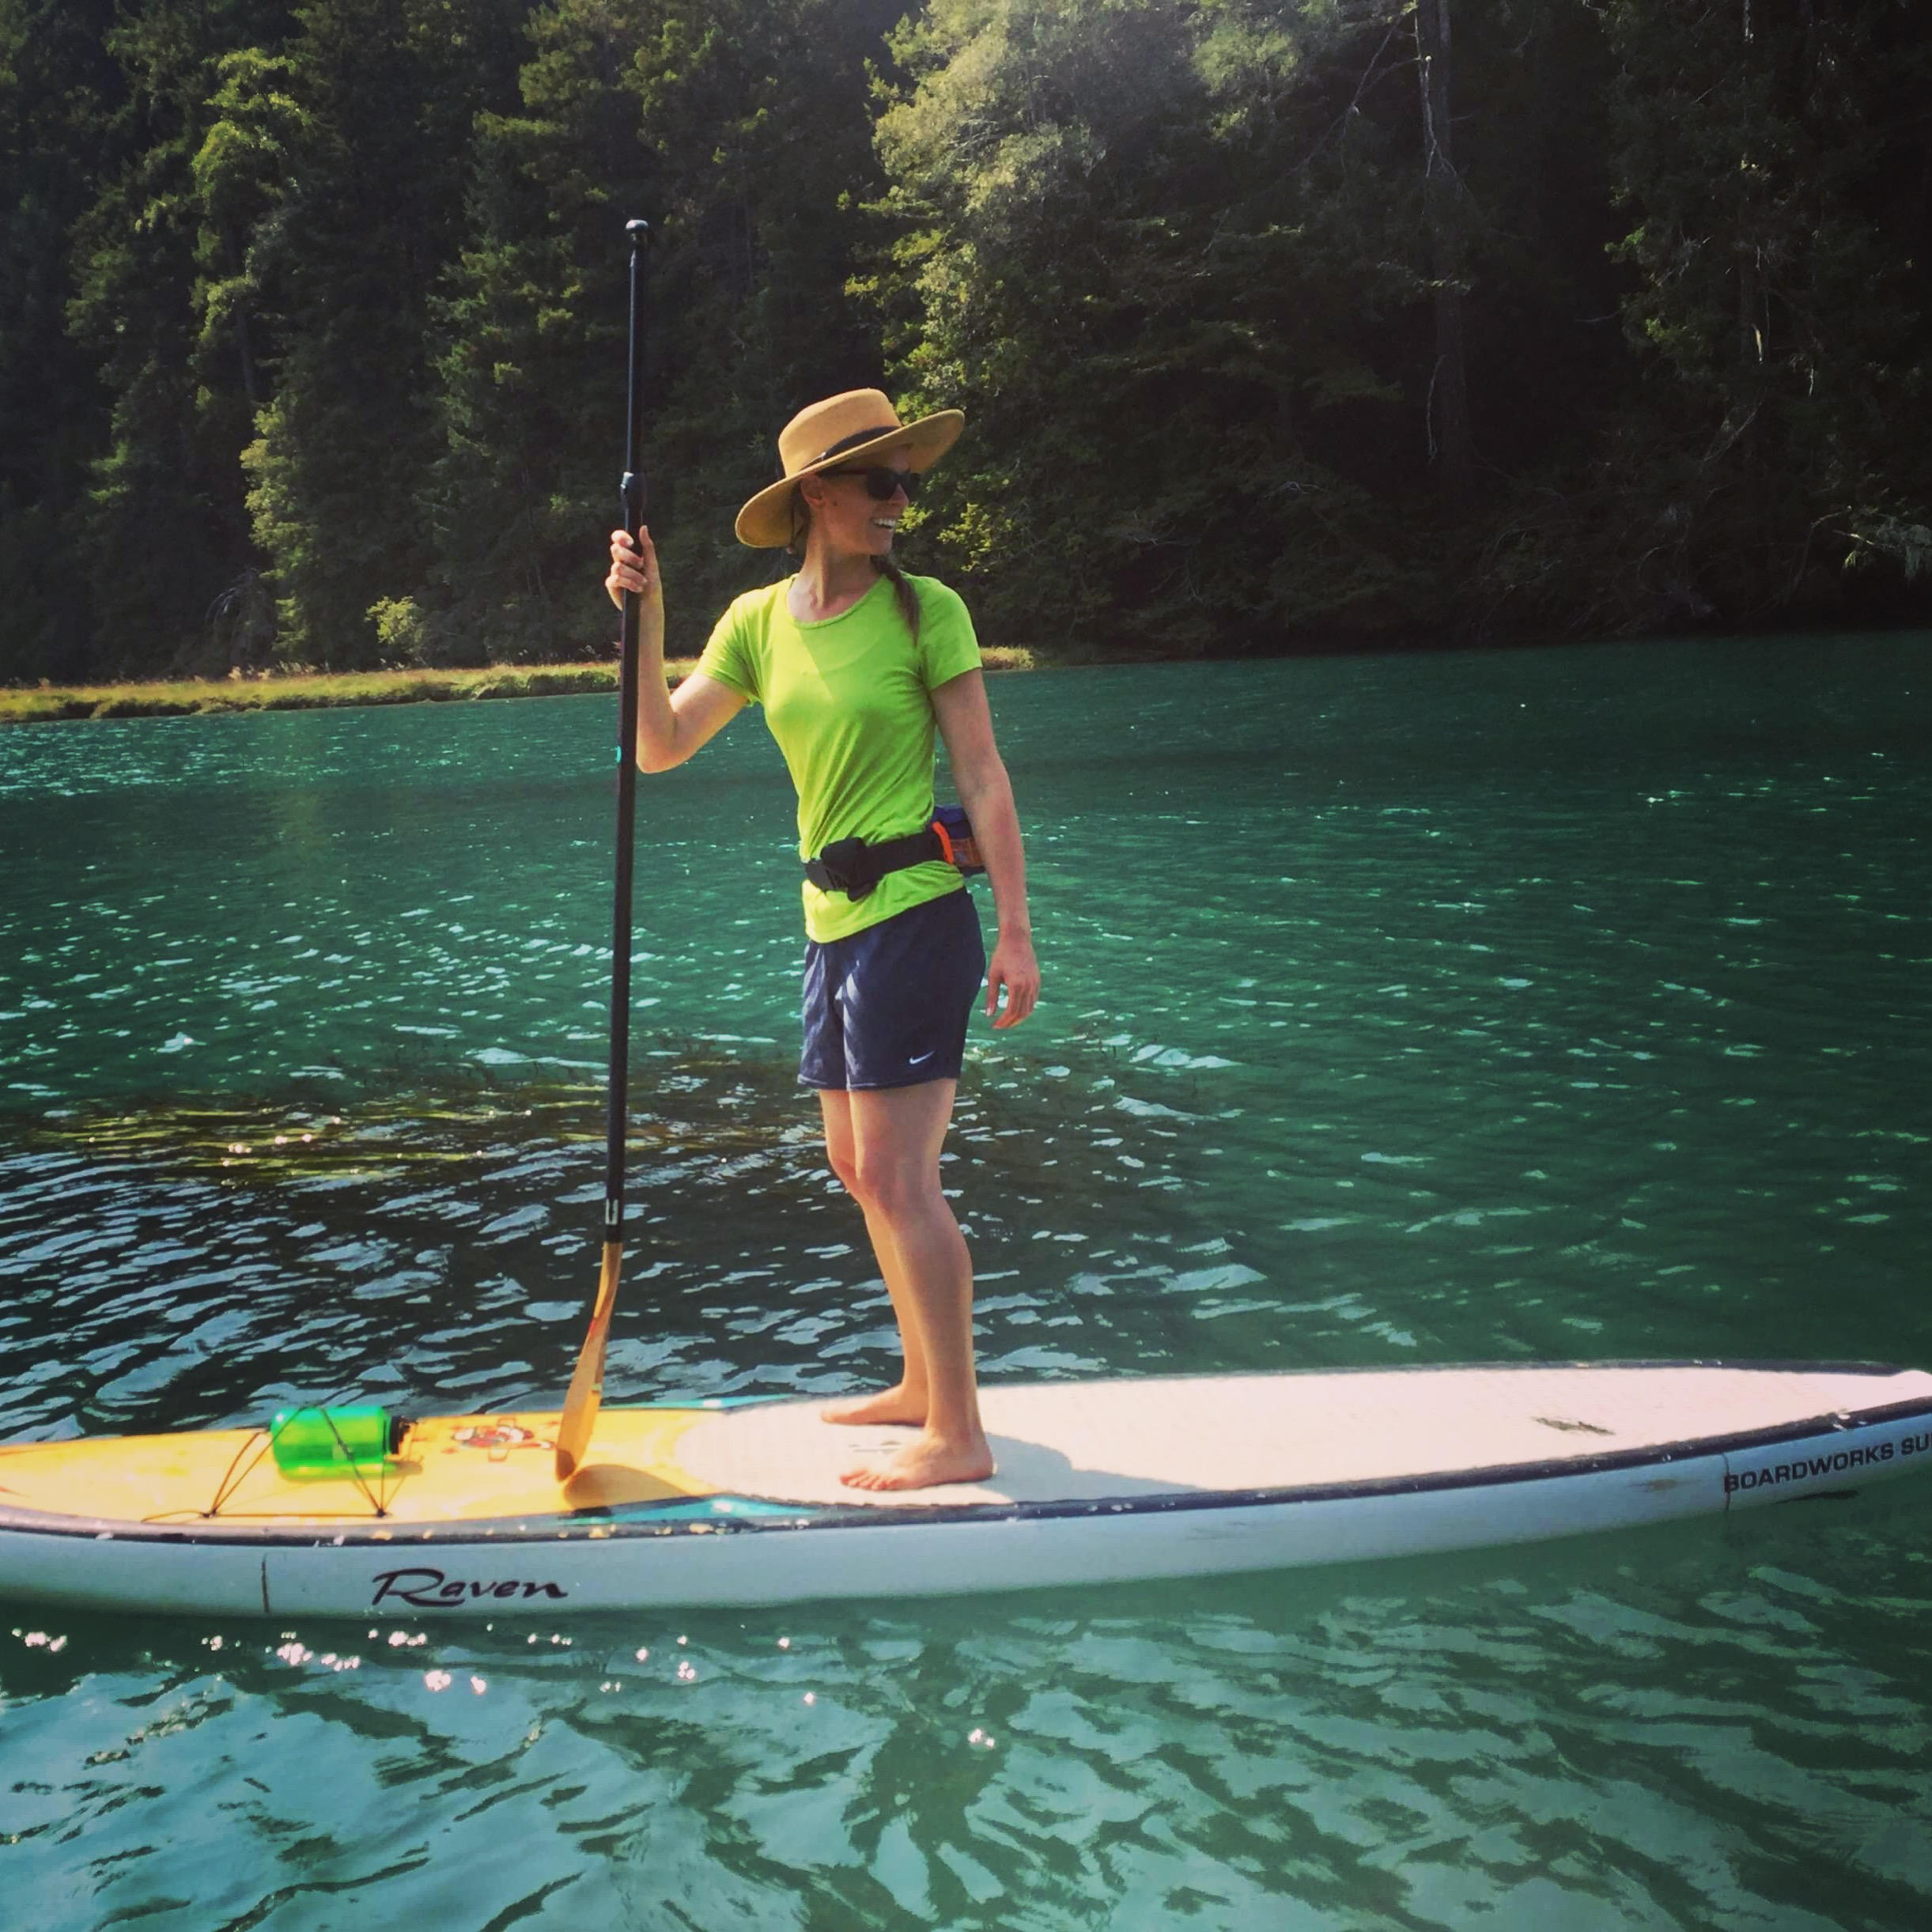 Stand up paddle boarding on Big River